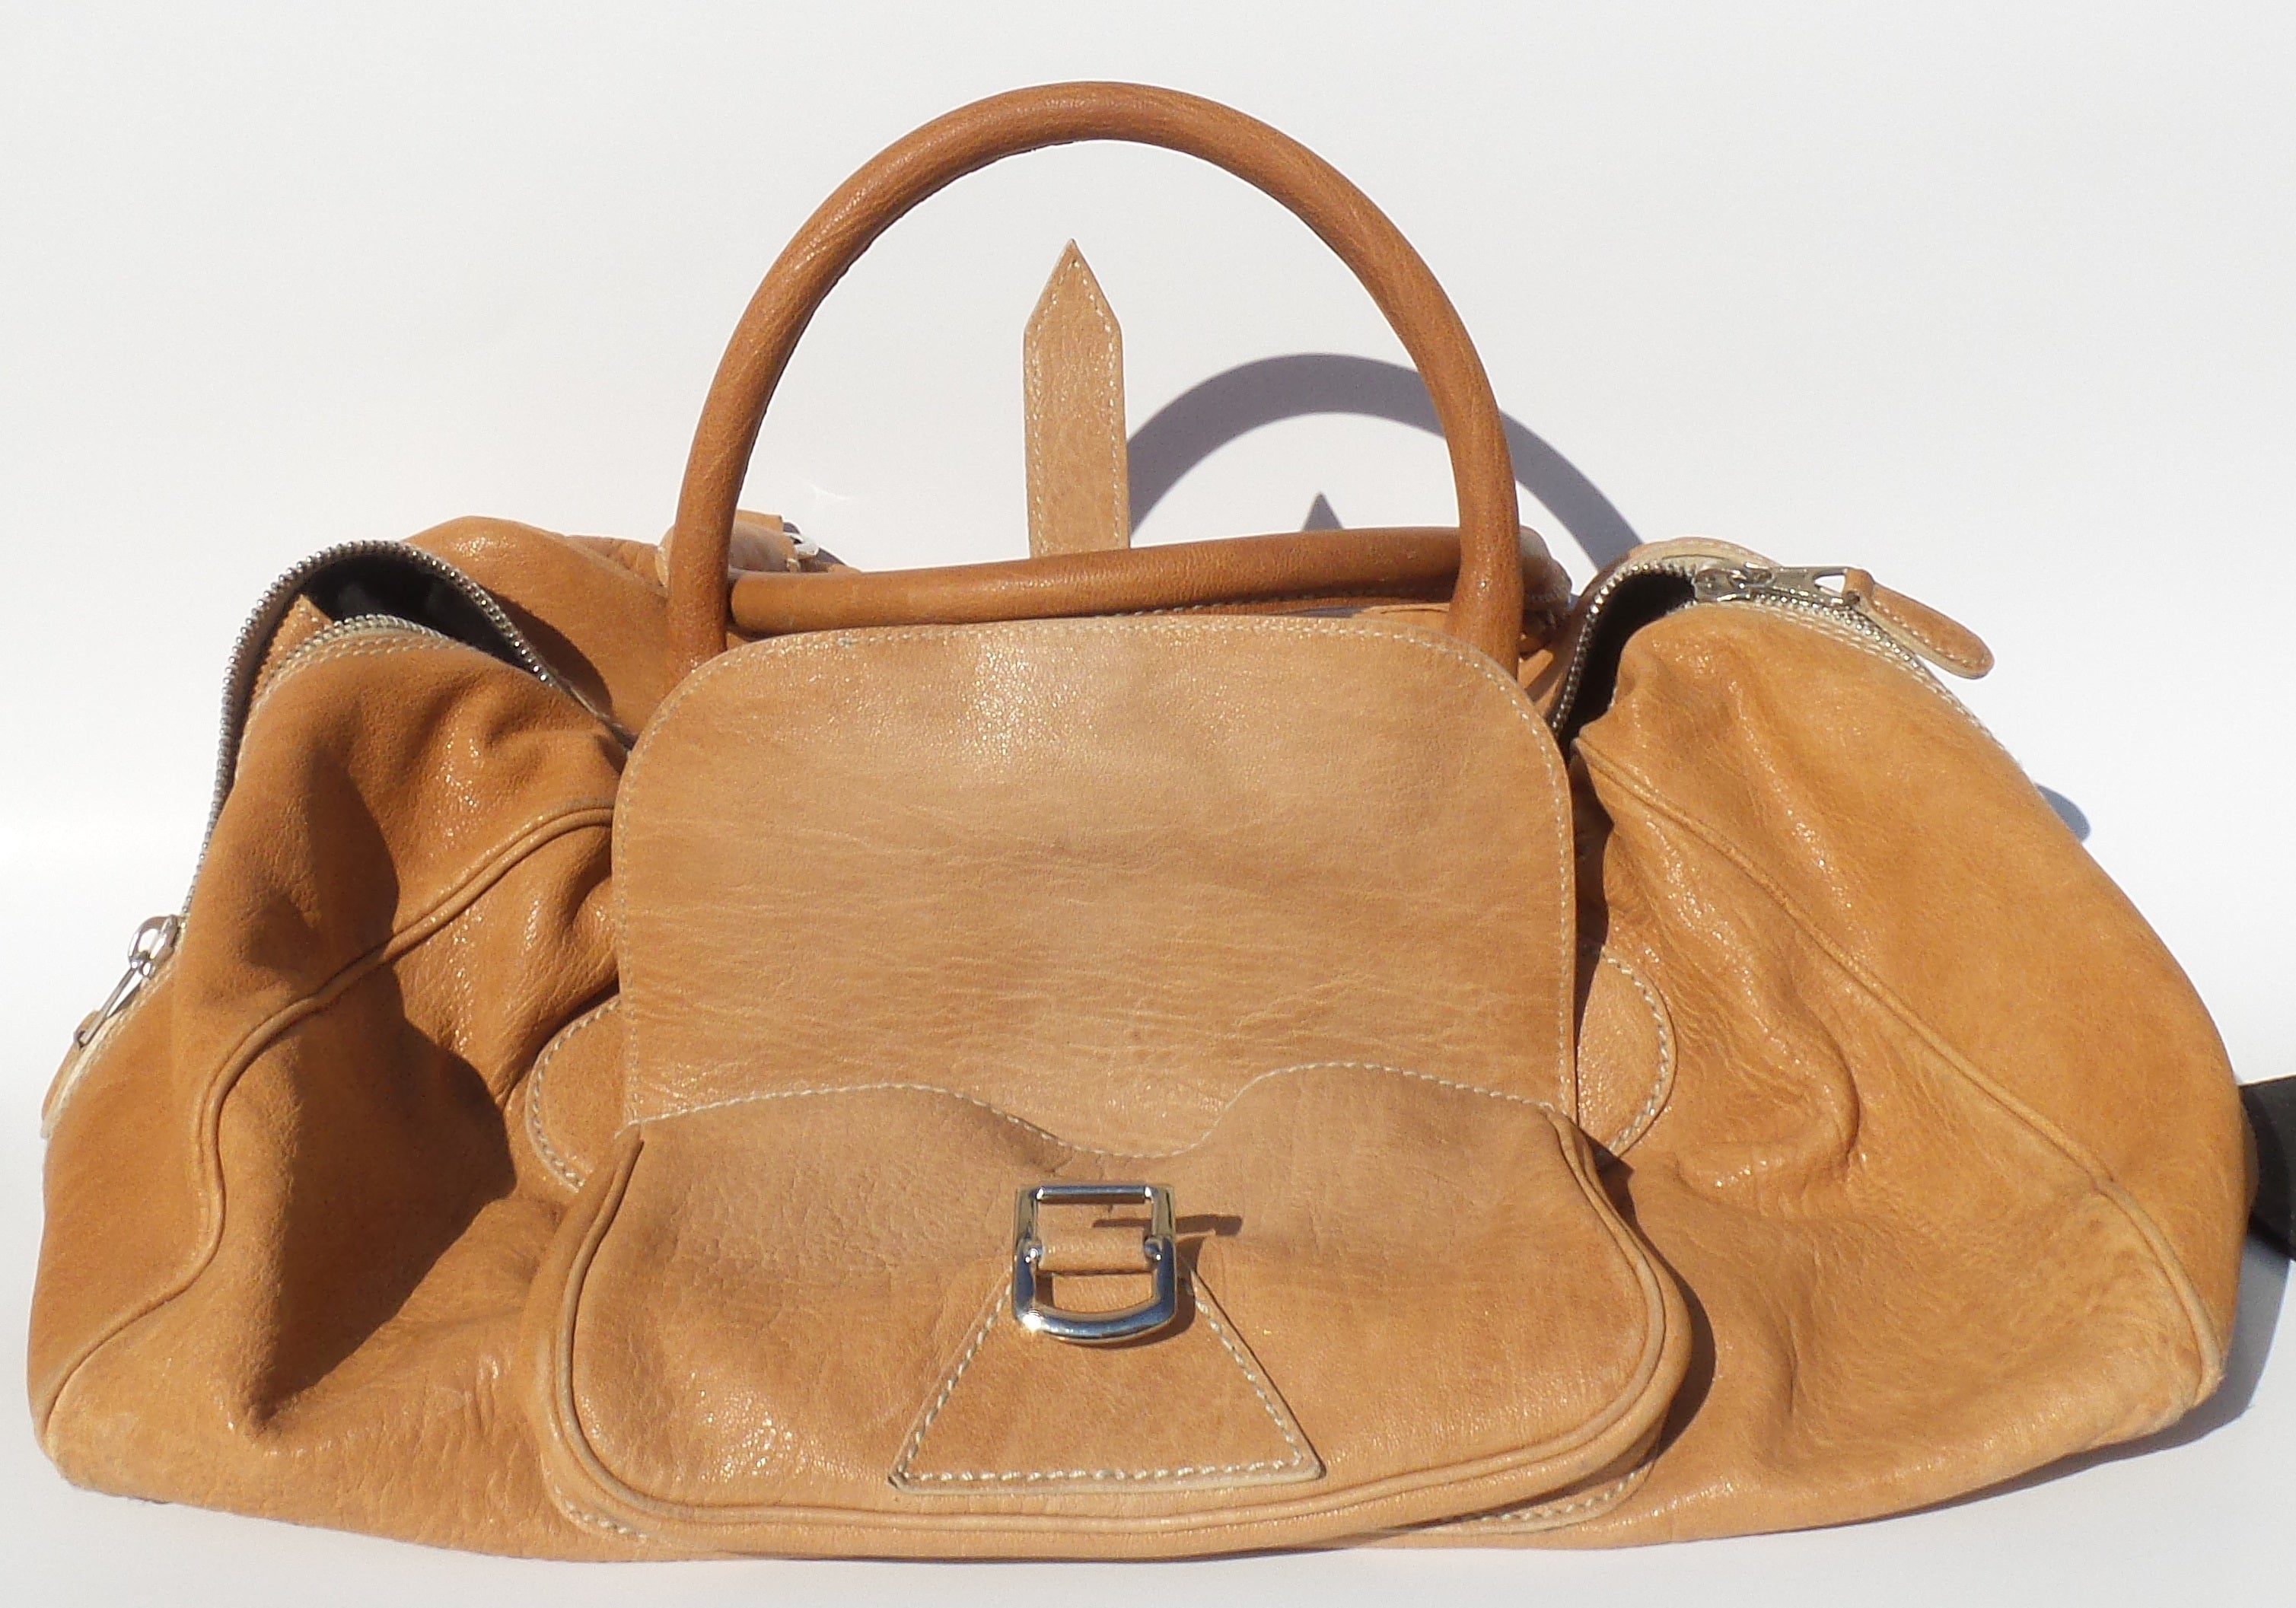 BALENCIAGA Tan Caramel Leather Front Flap Pocket Silver HW Satchel Tote Bag '06